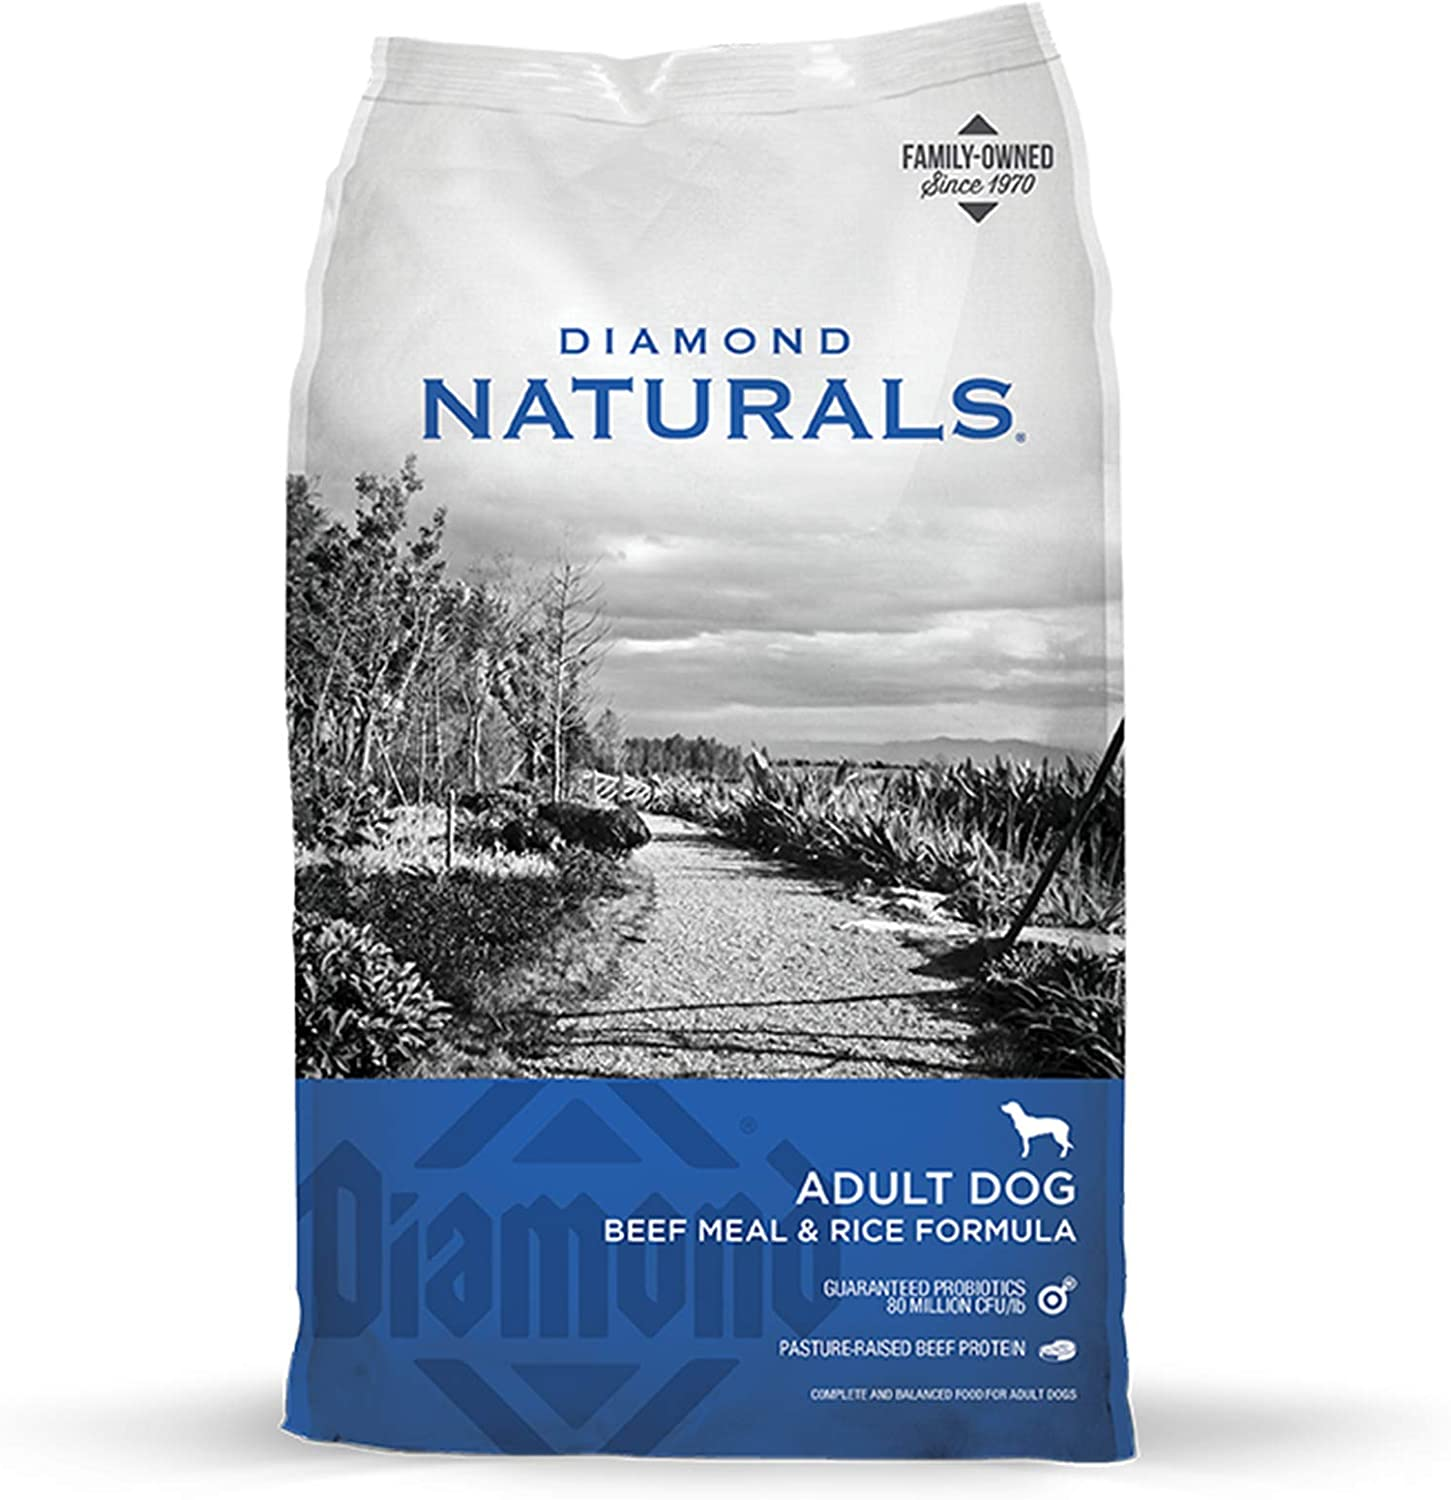 1. Diamond Naturals (Dry) Dog Food